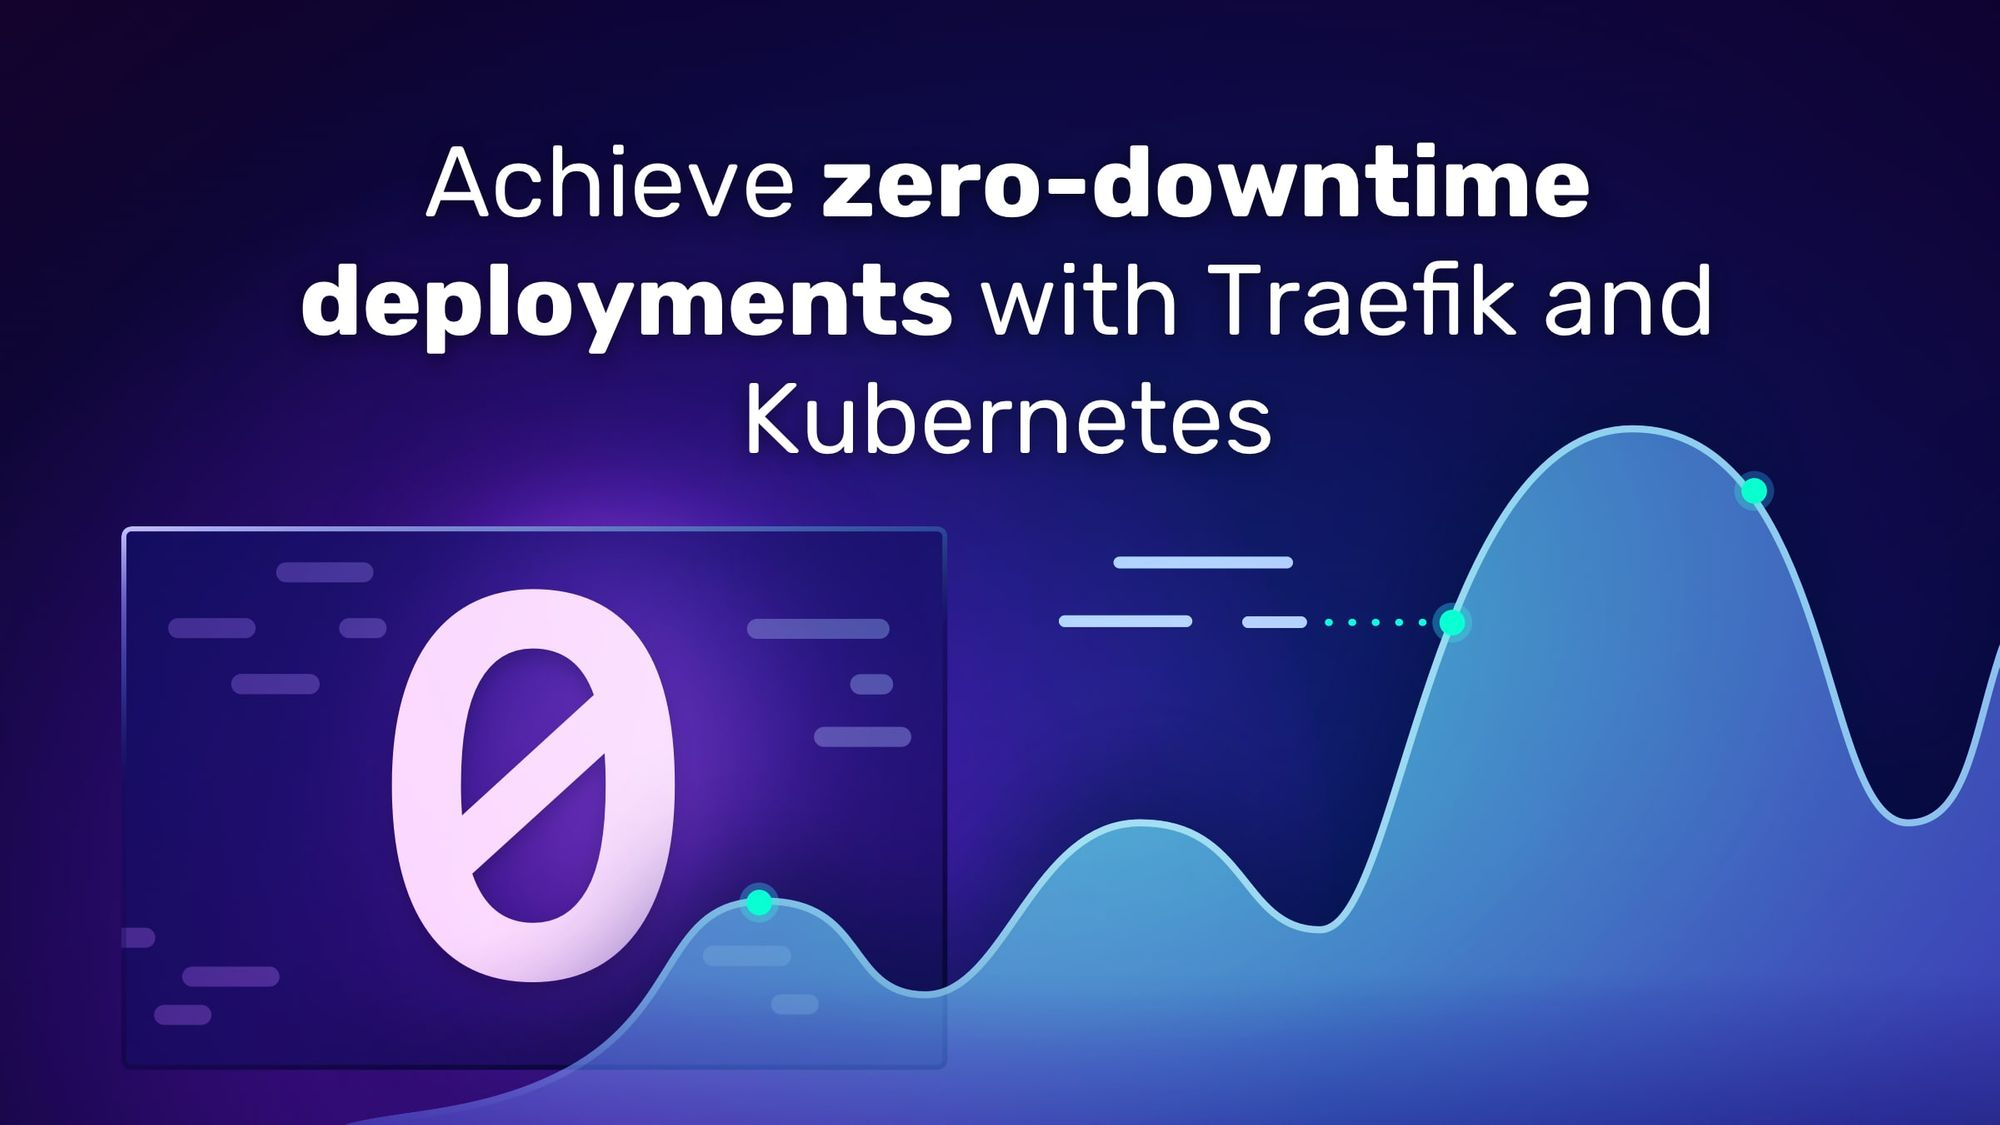 Achieve zero-downtime deployments with Traefik and Kubernetes